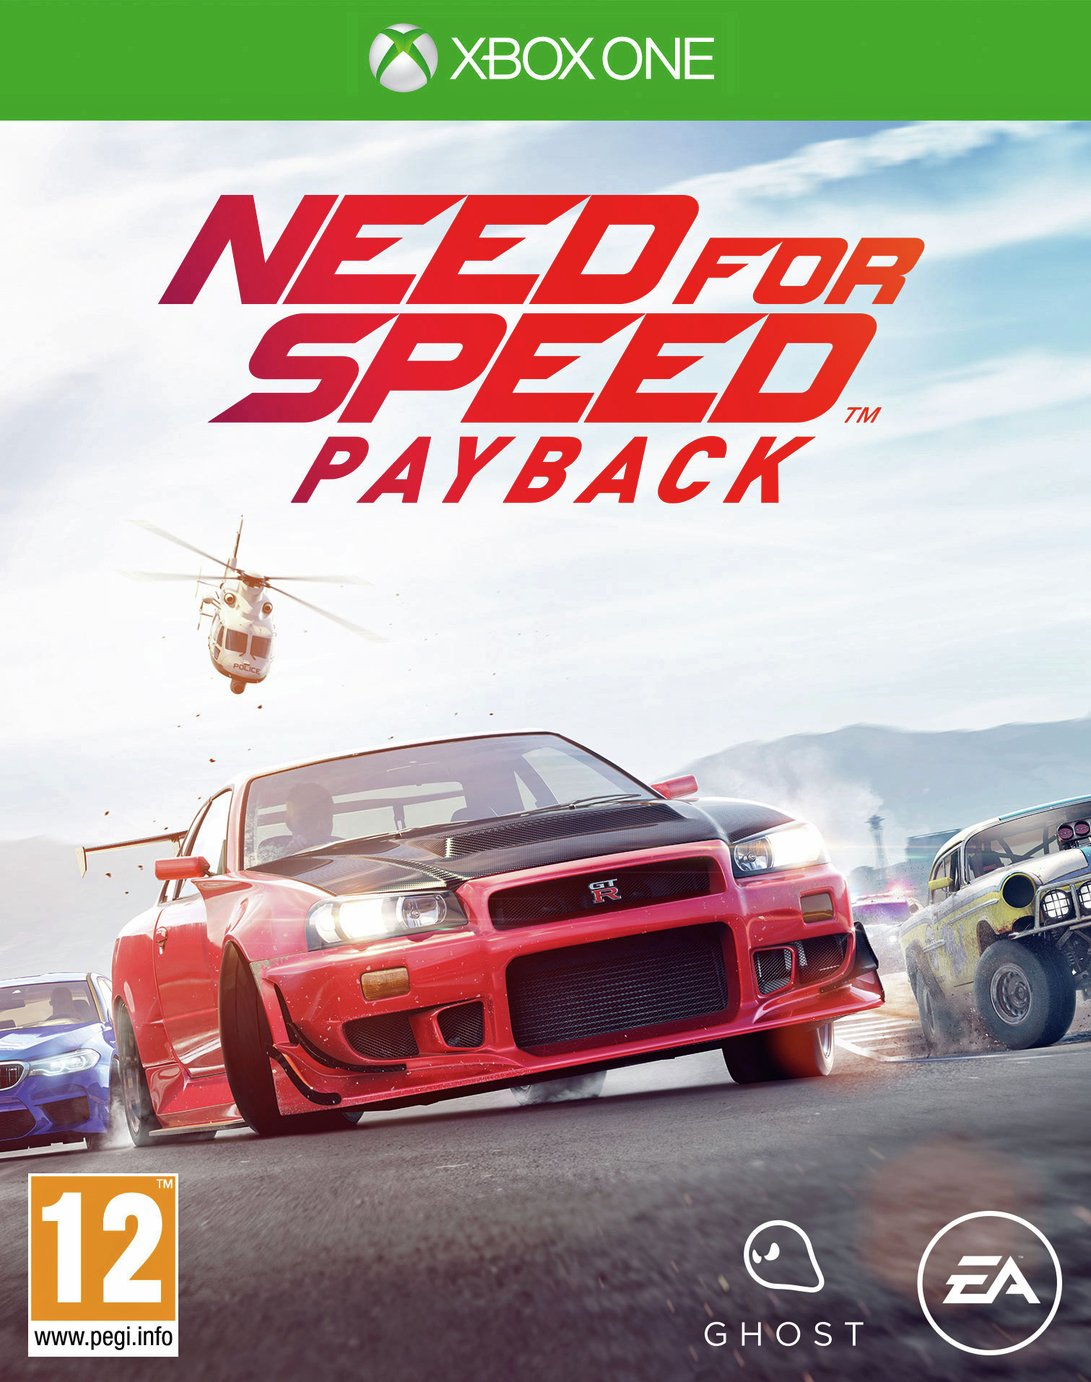 need-for-speed-payback-xbox-one-pre-order-game